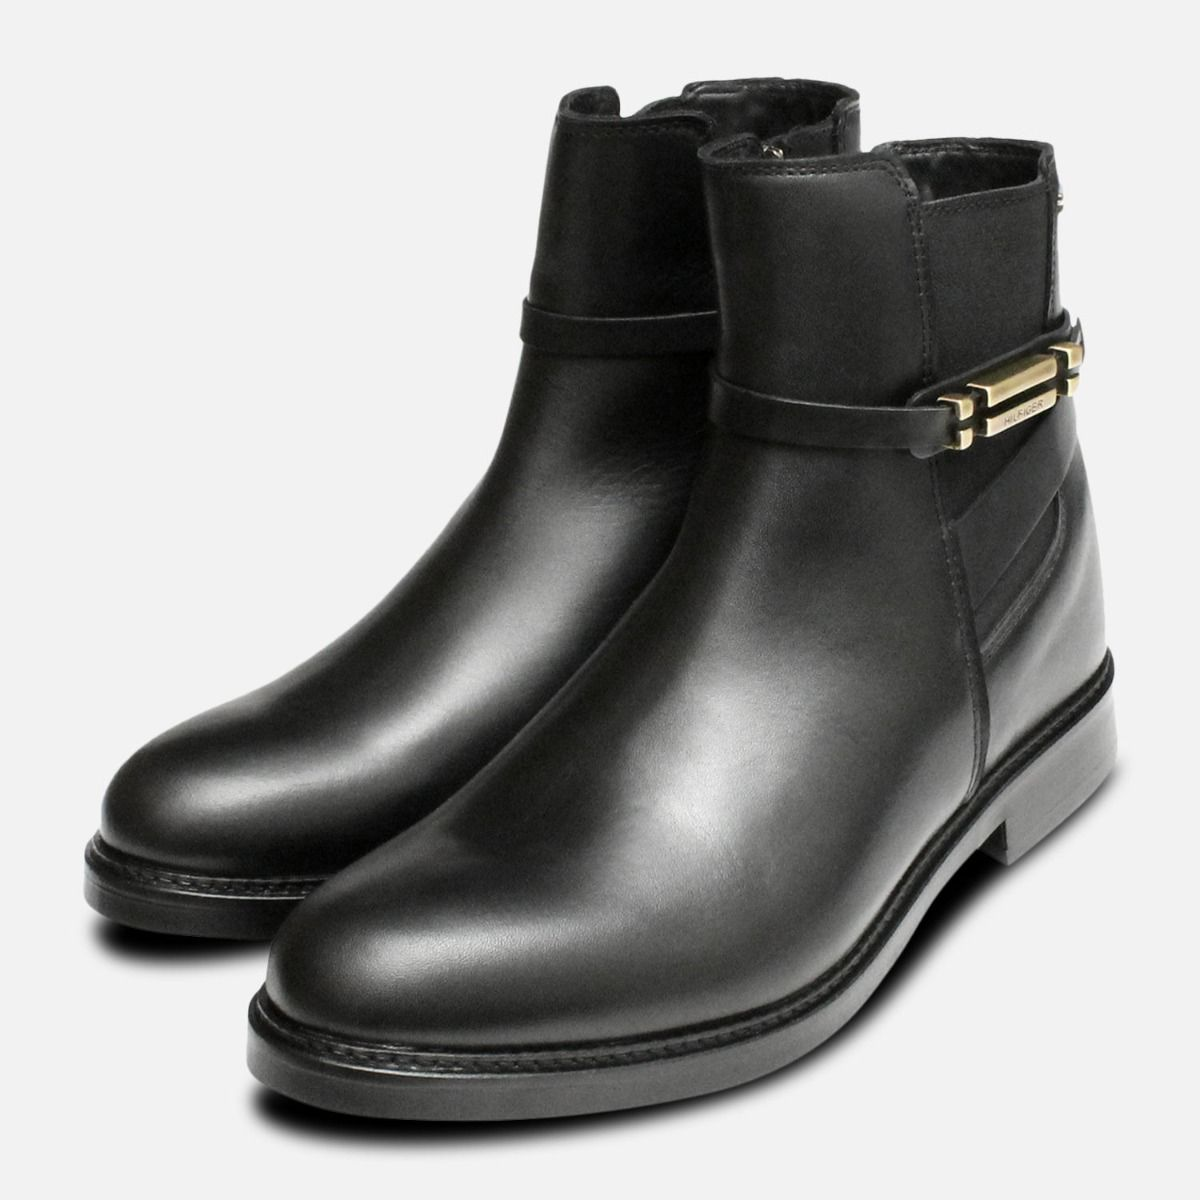 e963503567f6b8 Waterproof Tommy Hilfiger Black Holly Chelsea Boots